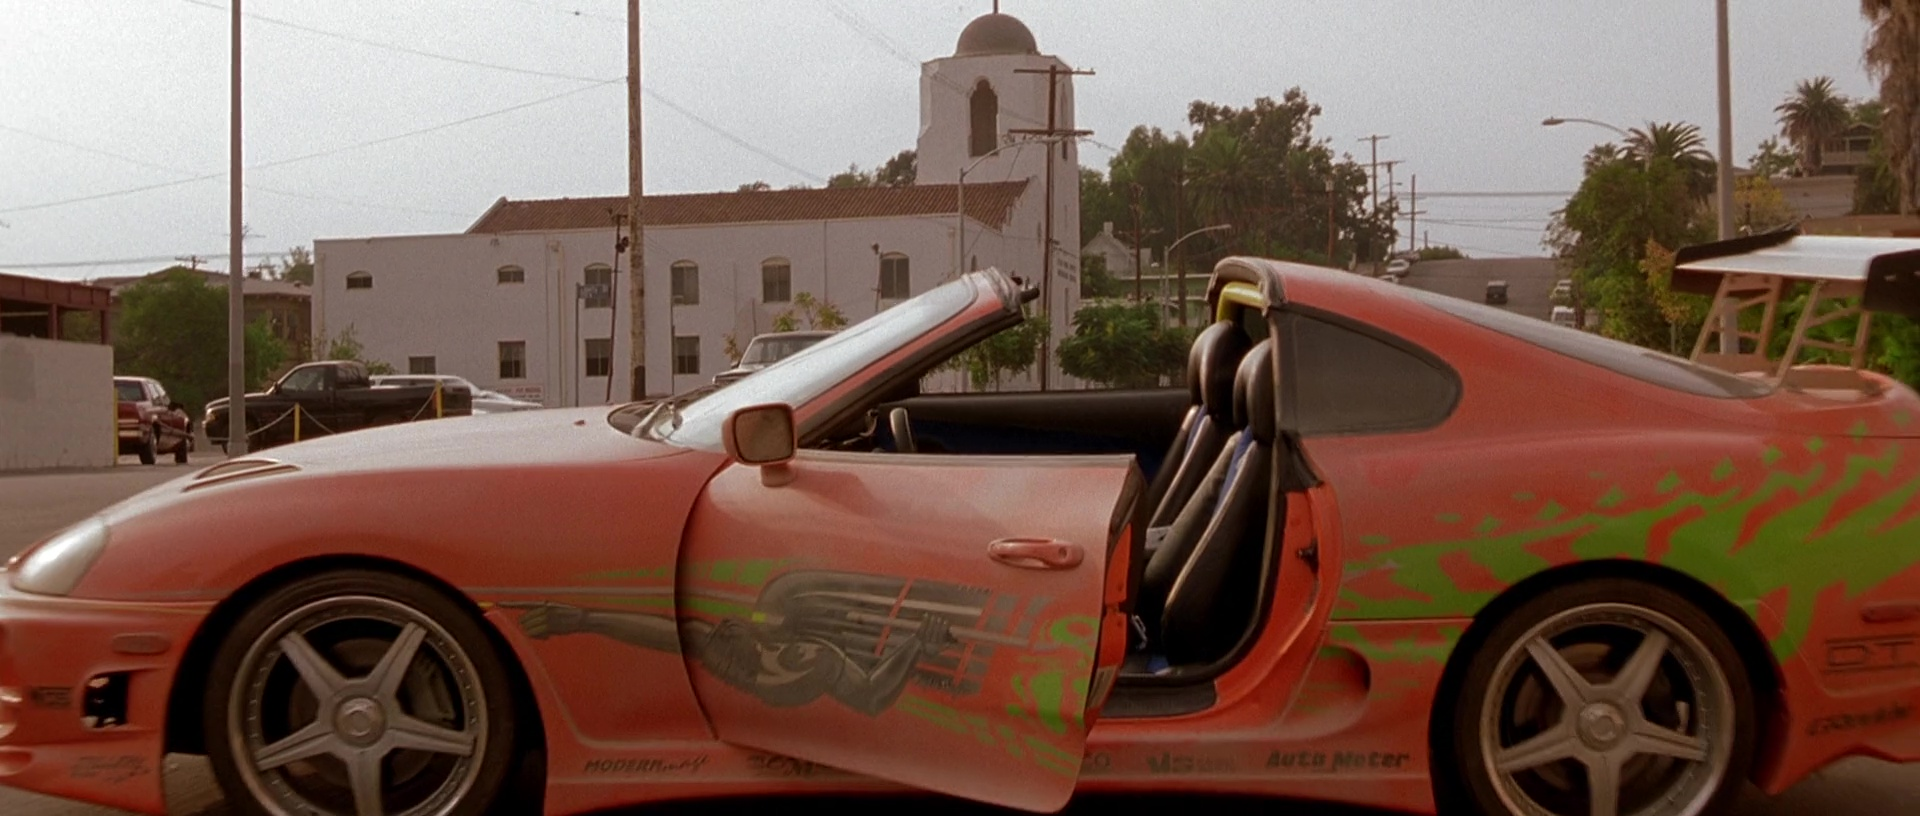 Image Brian S Supra Side View Jpg The Fast And The